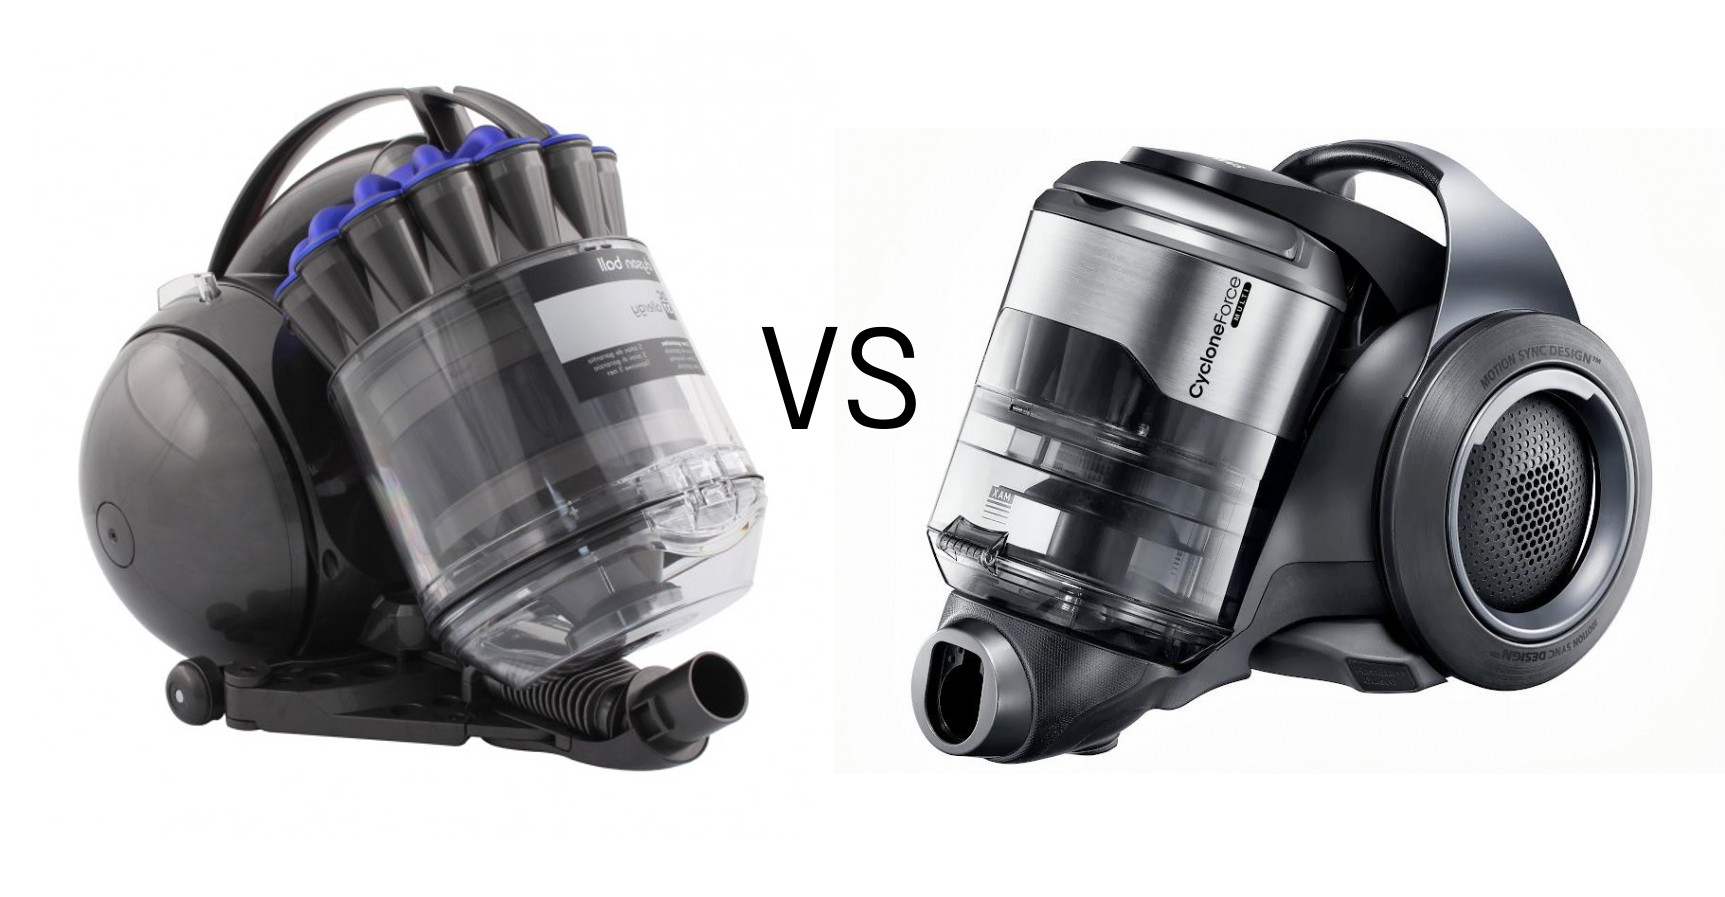 The Dyson DC37 Allergy Musclehead Parquet vs. the Samsung Motion Sync Vacuum Cleaner.